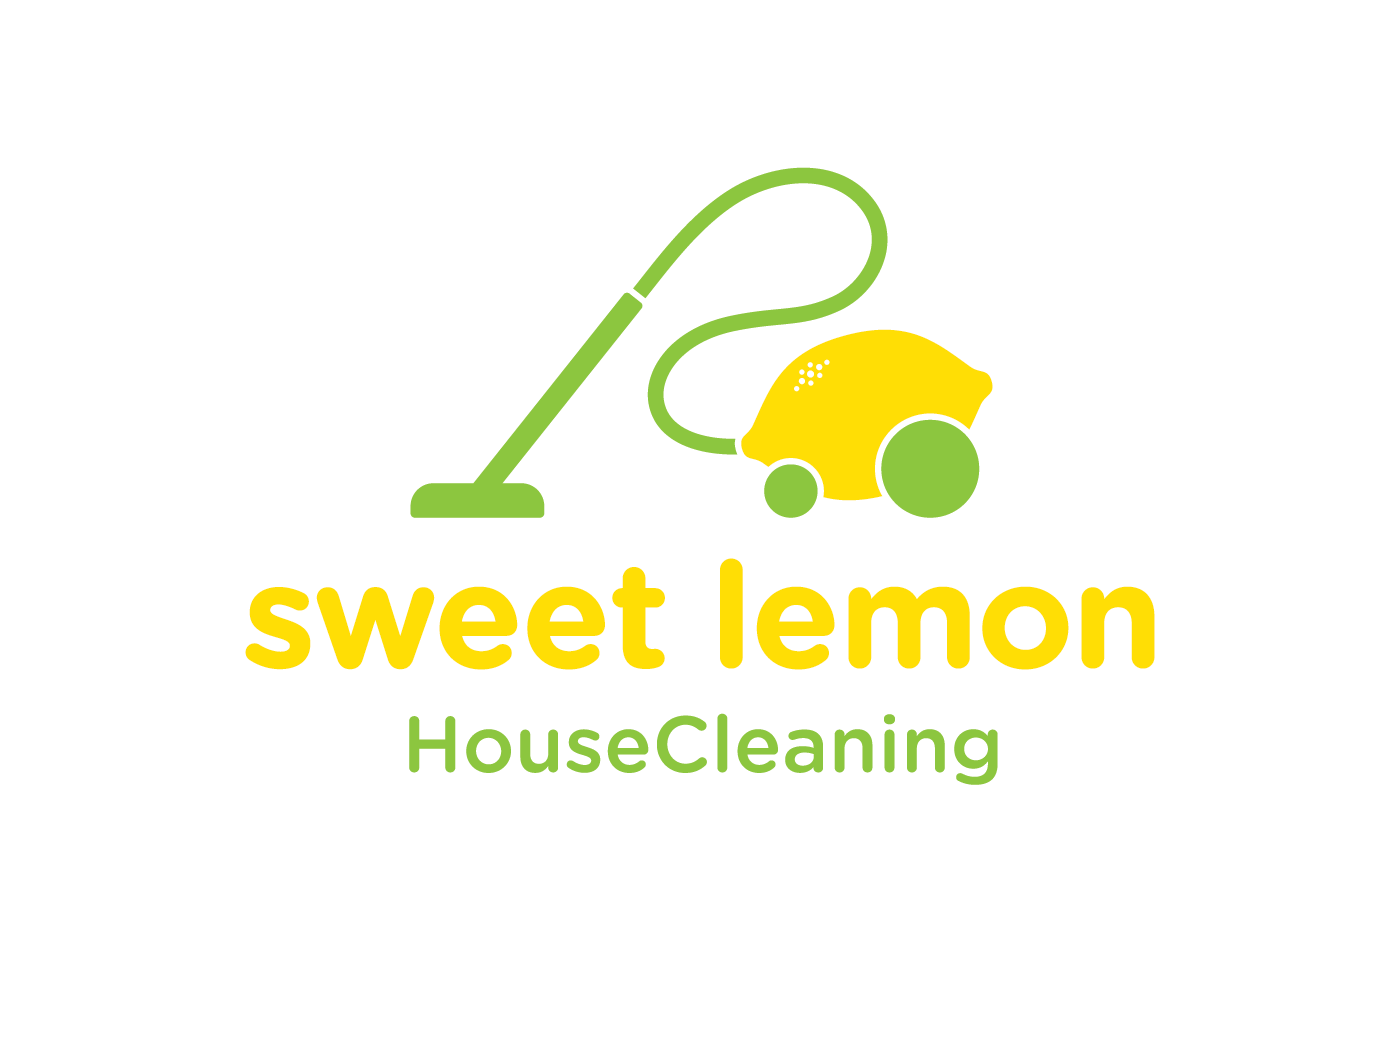 Sweet Lemon HouseCleaning